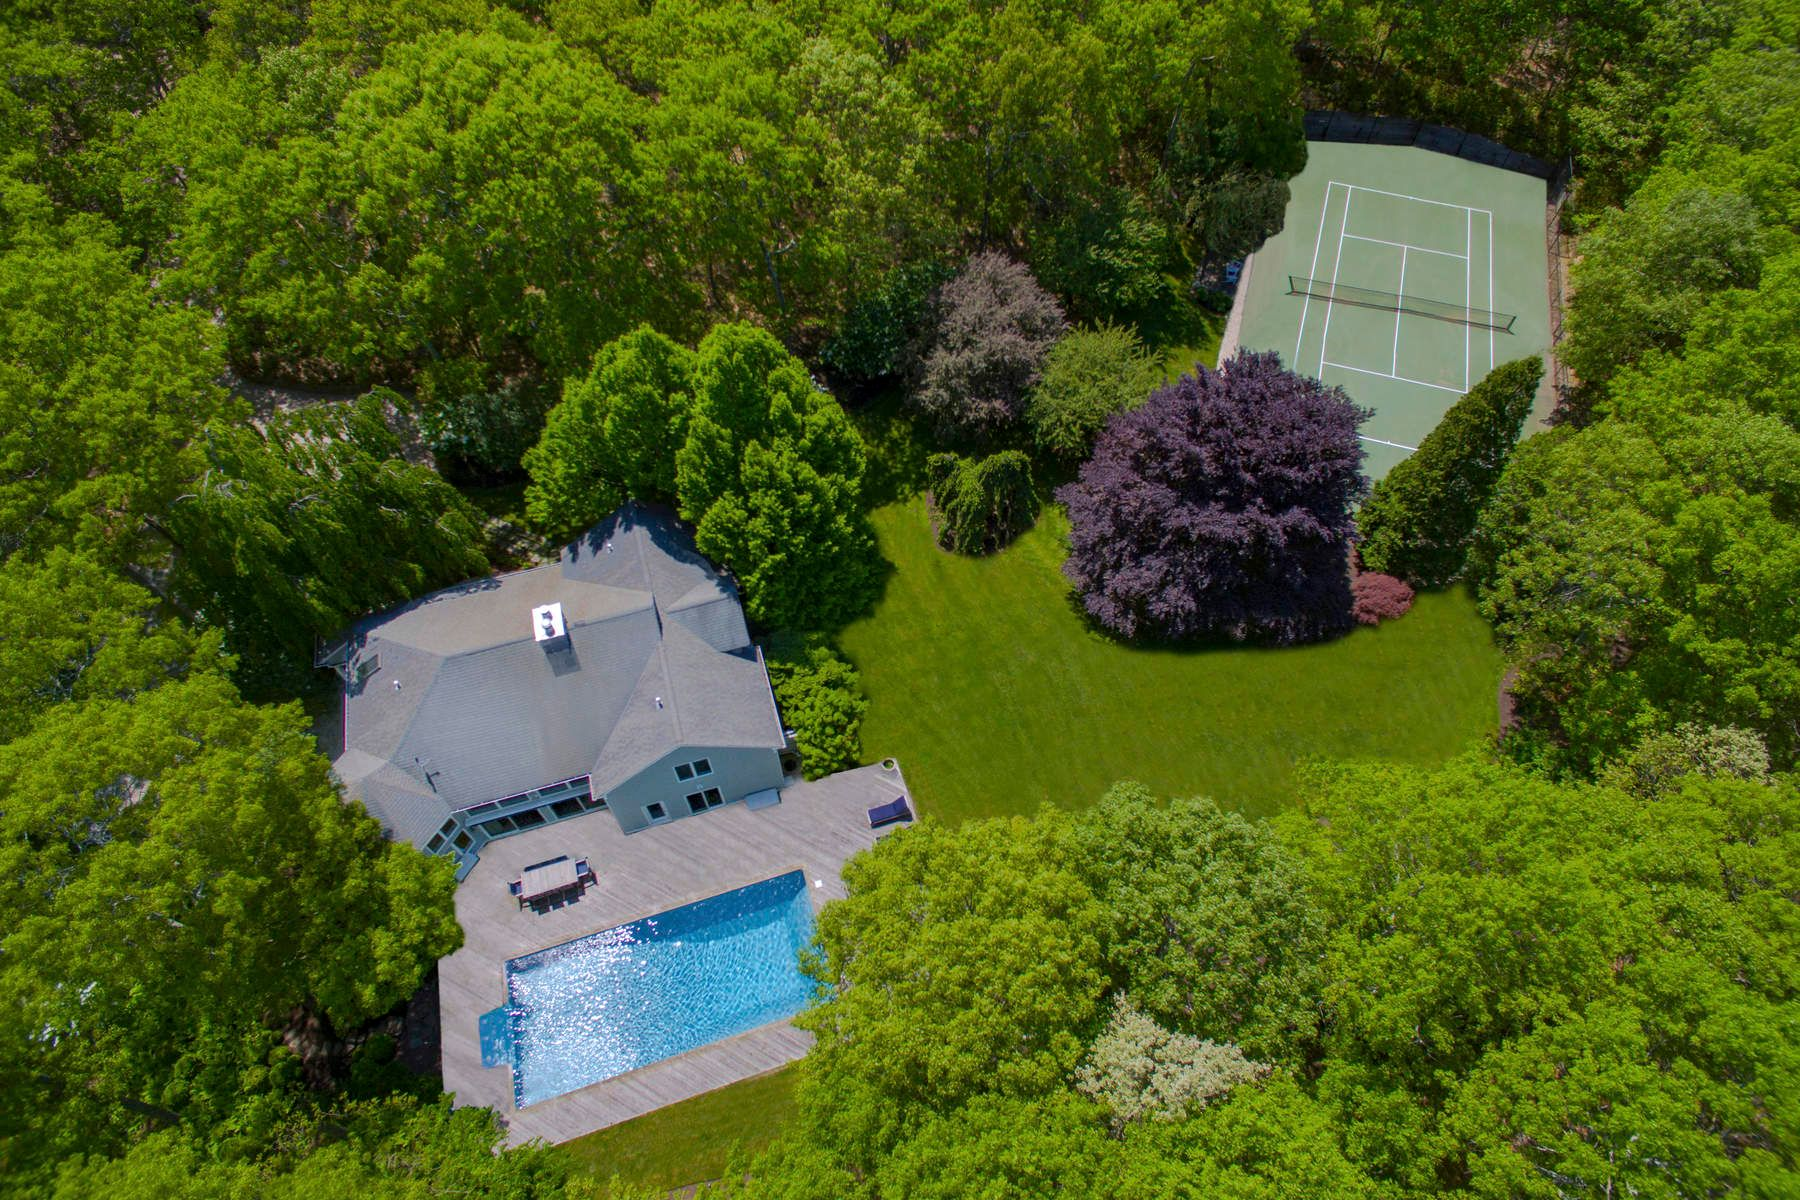 Single Family Homes für Verkauf beim Sag Harbor Village Fringe With Tennis 118 Merchants Path, Wainscott, New York 11975 Vereinigte Staaten